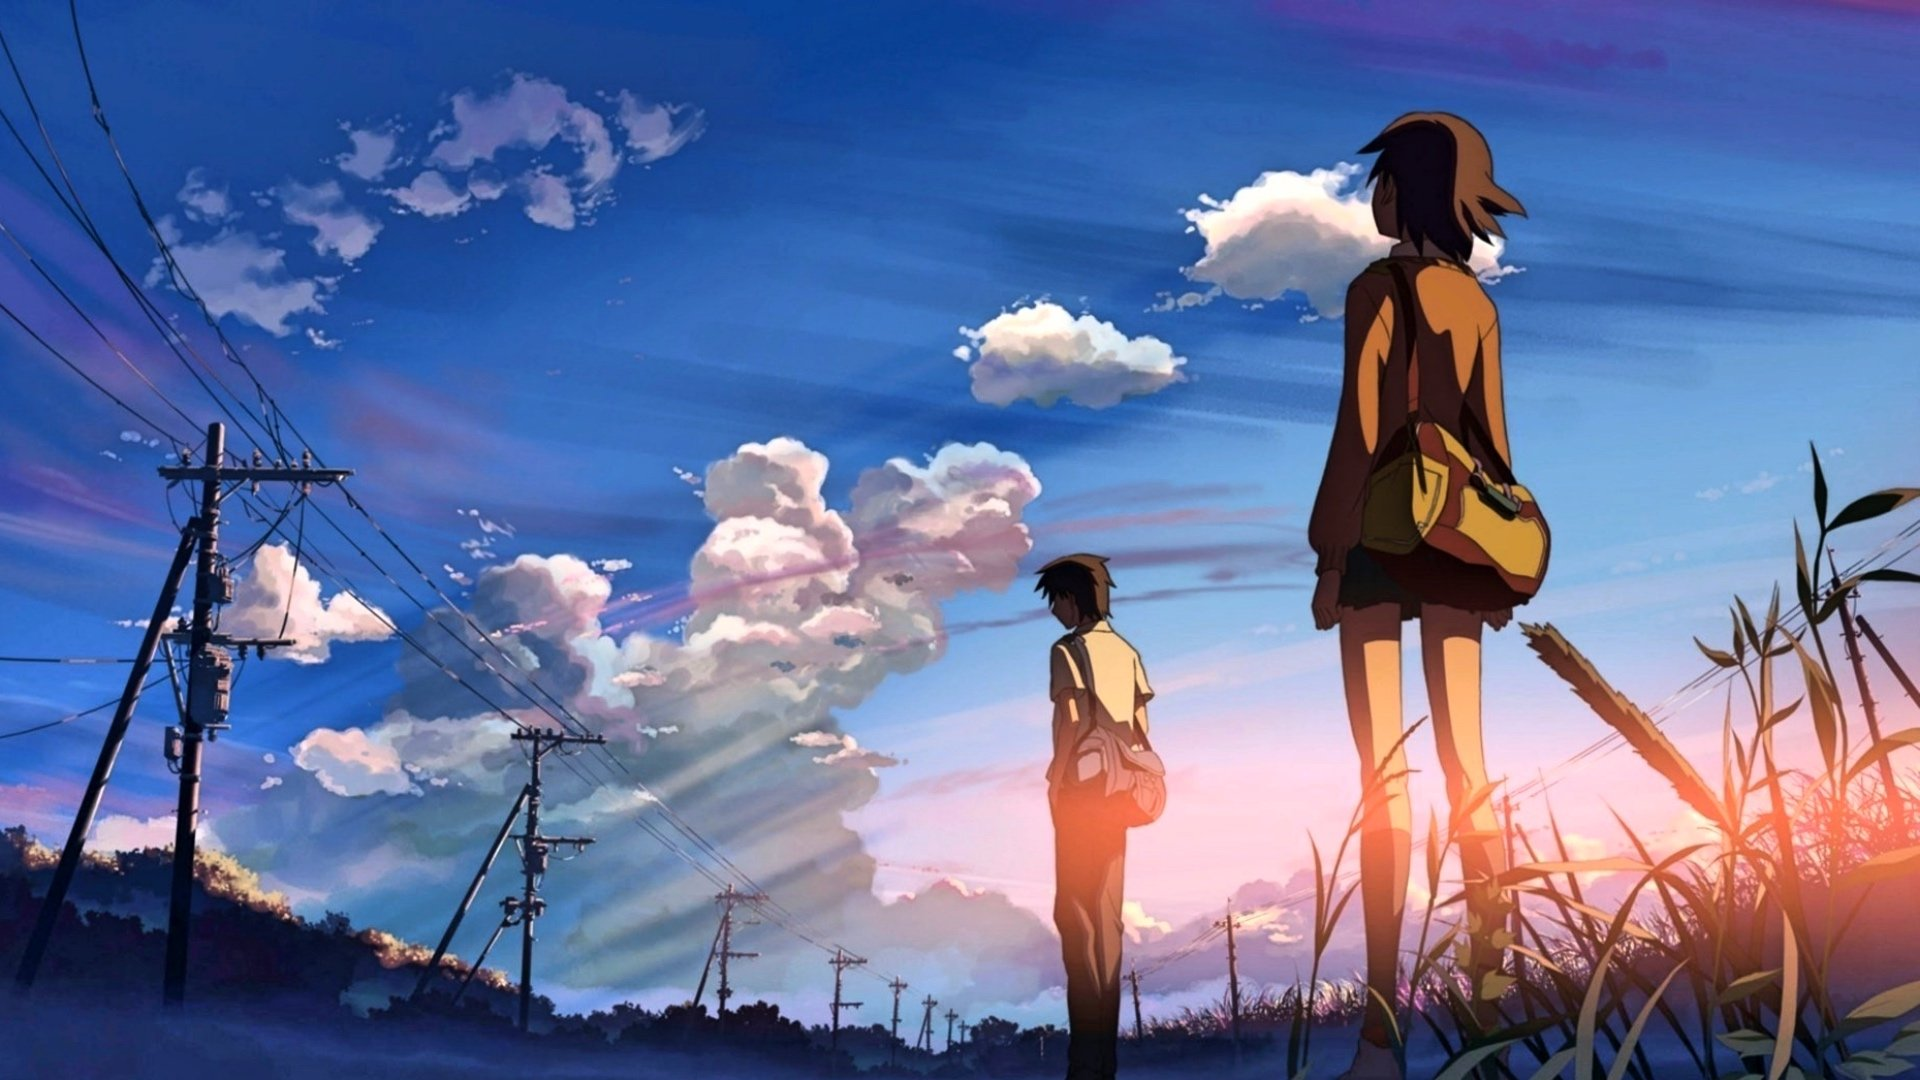 Centimeters Per Second (2007)